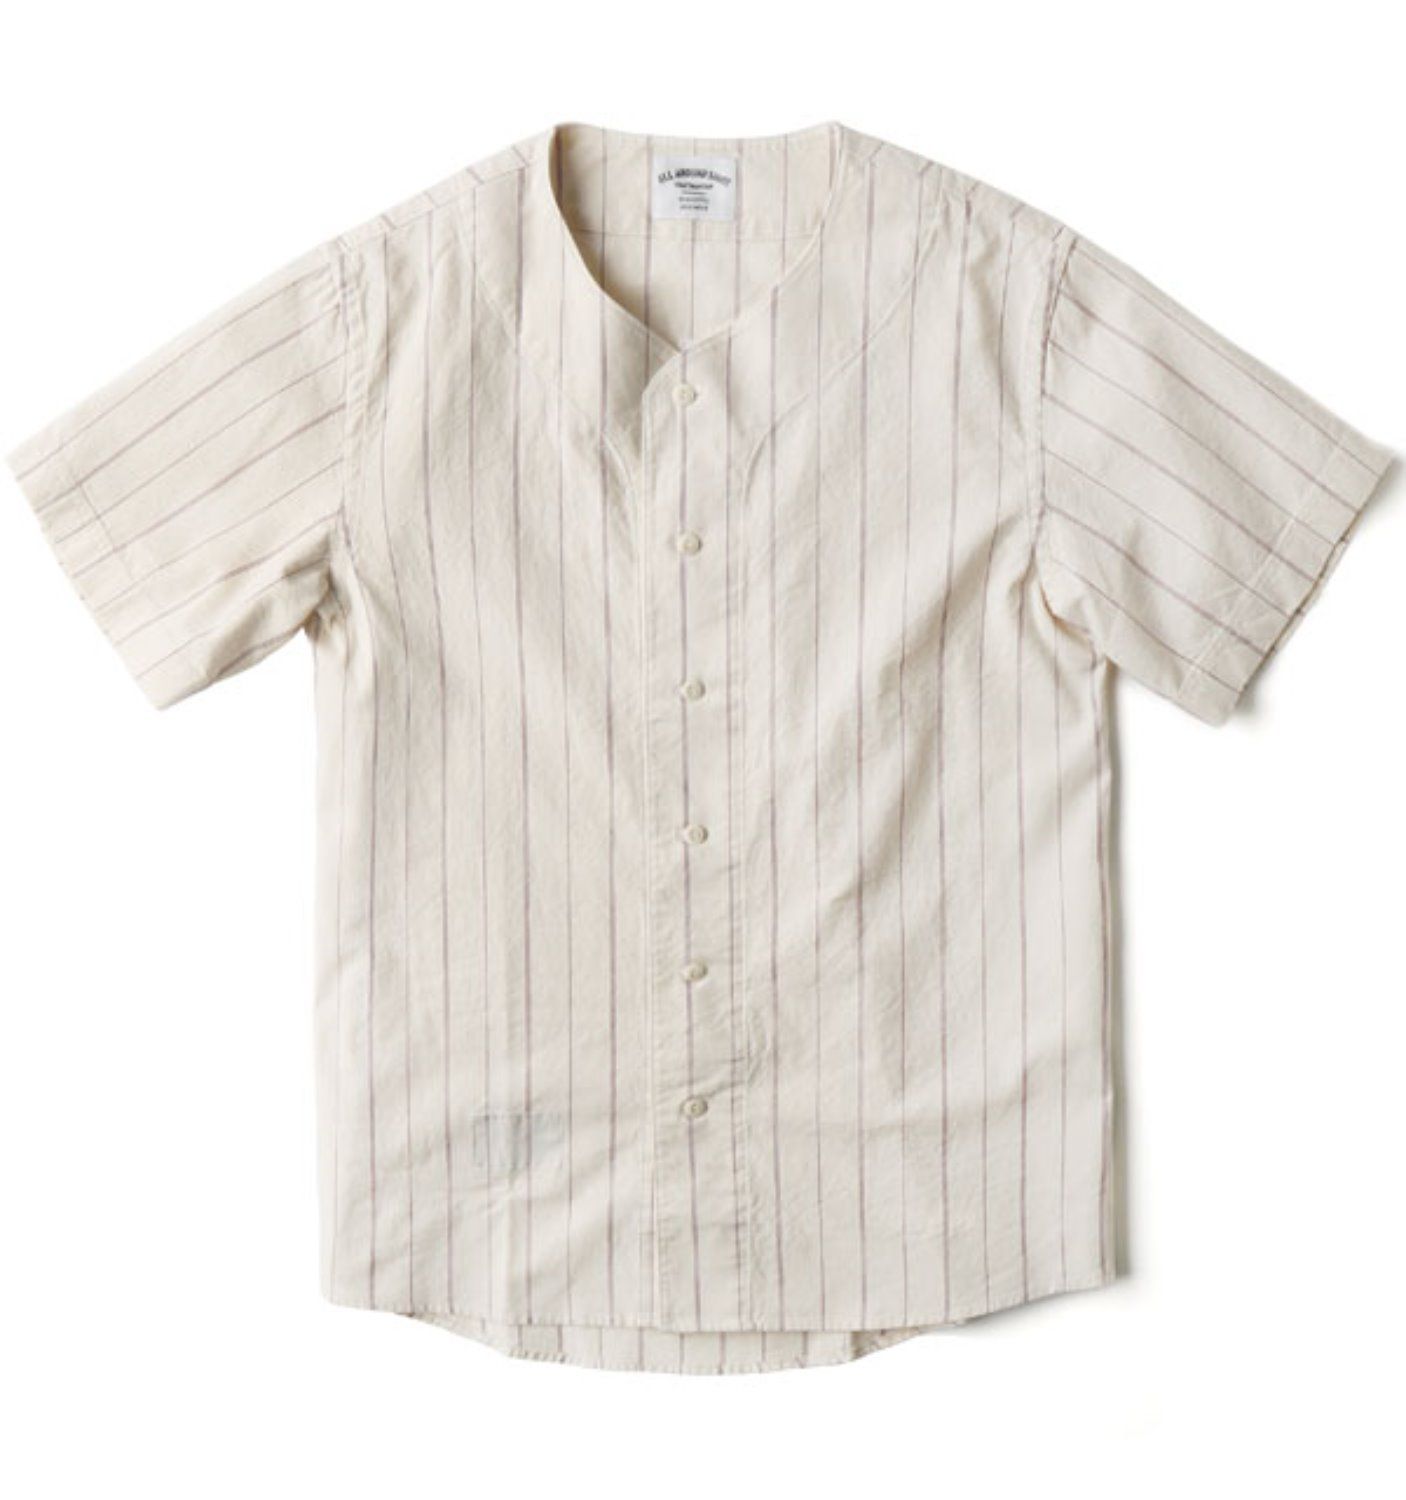 SC-BS01 Baseball Shirt WINE (Sculp Exclusive)